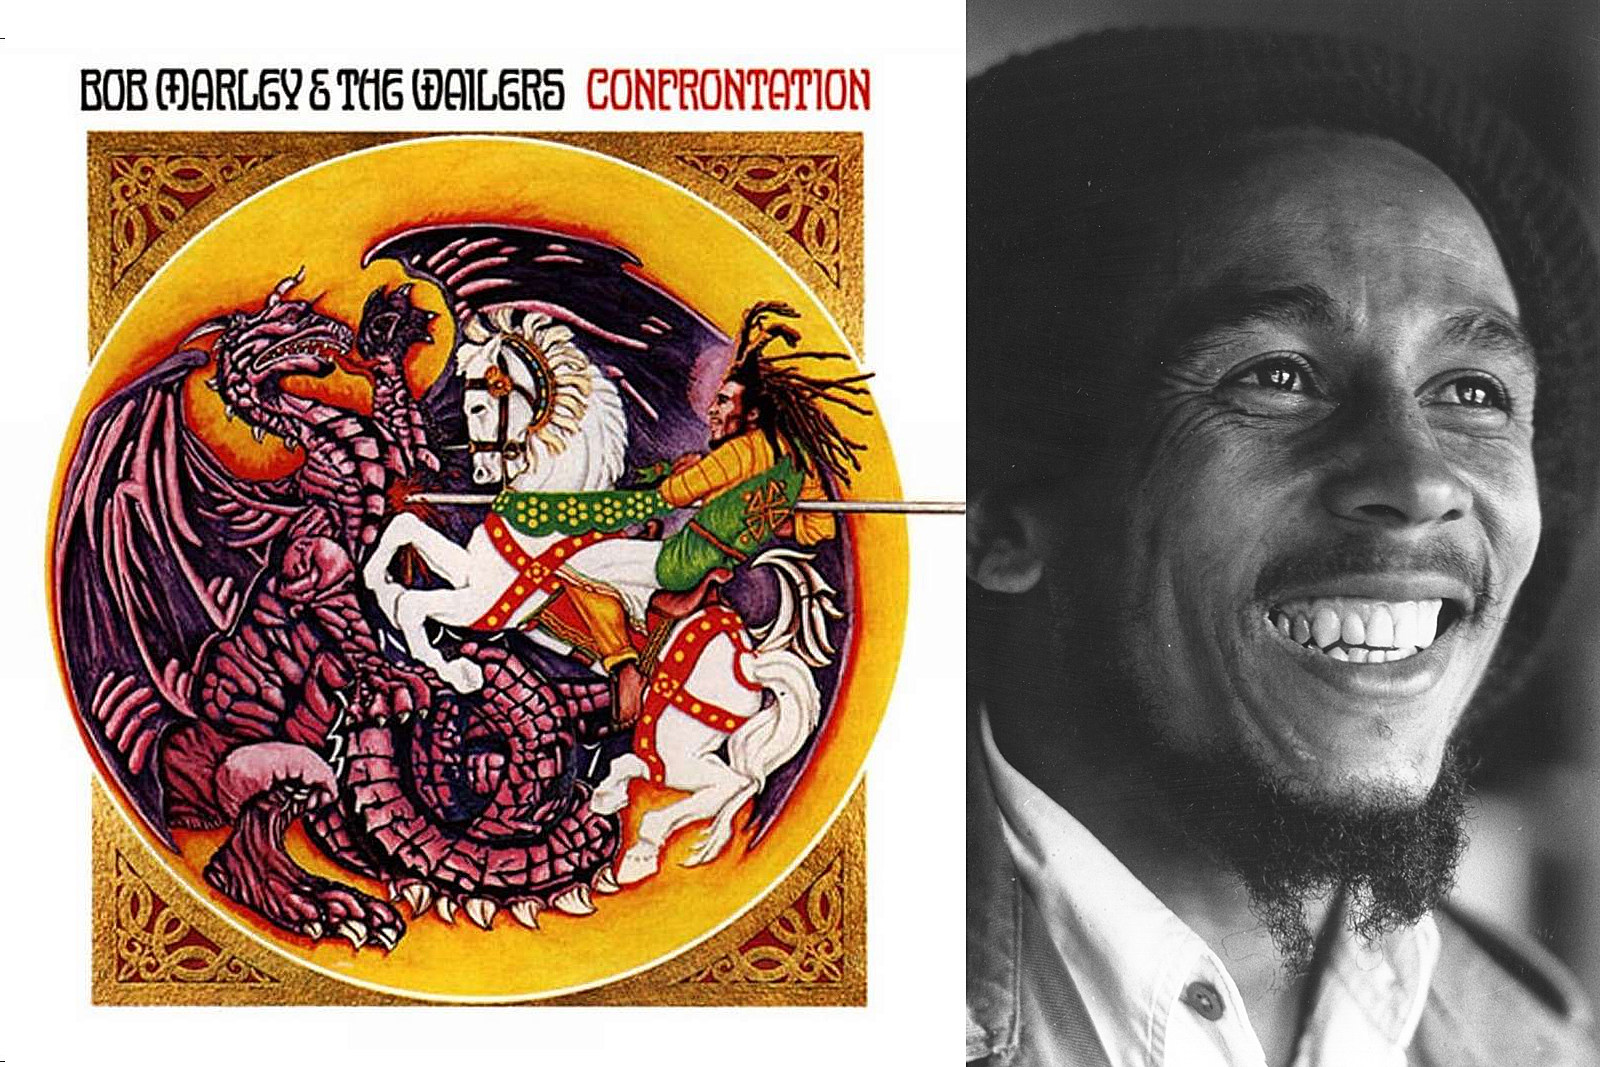 35 Years Ago: Bob Marley's Family Heads to Vaults for 'Confrontation'